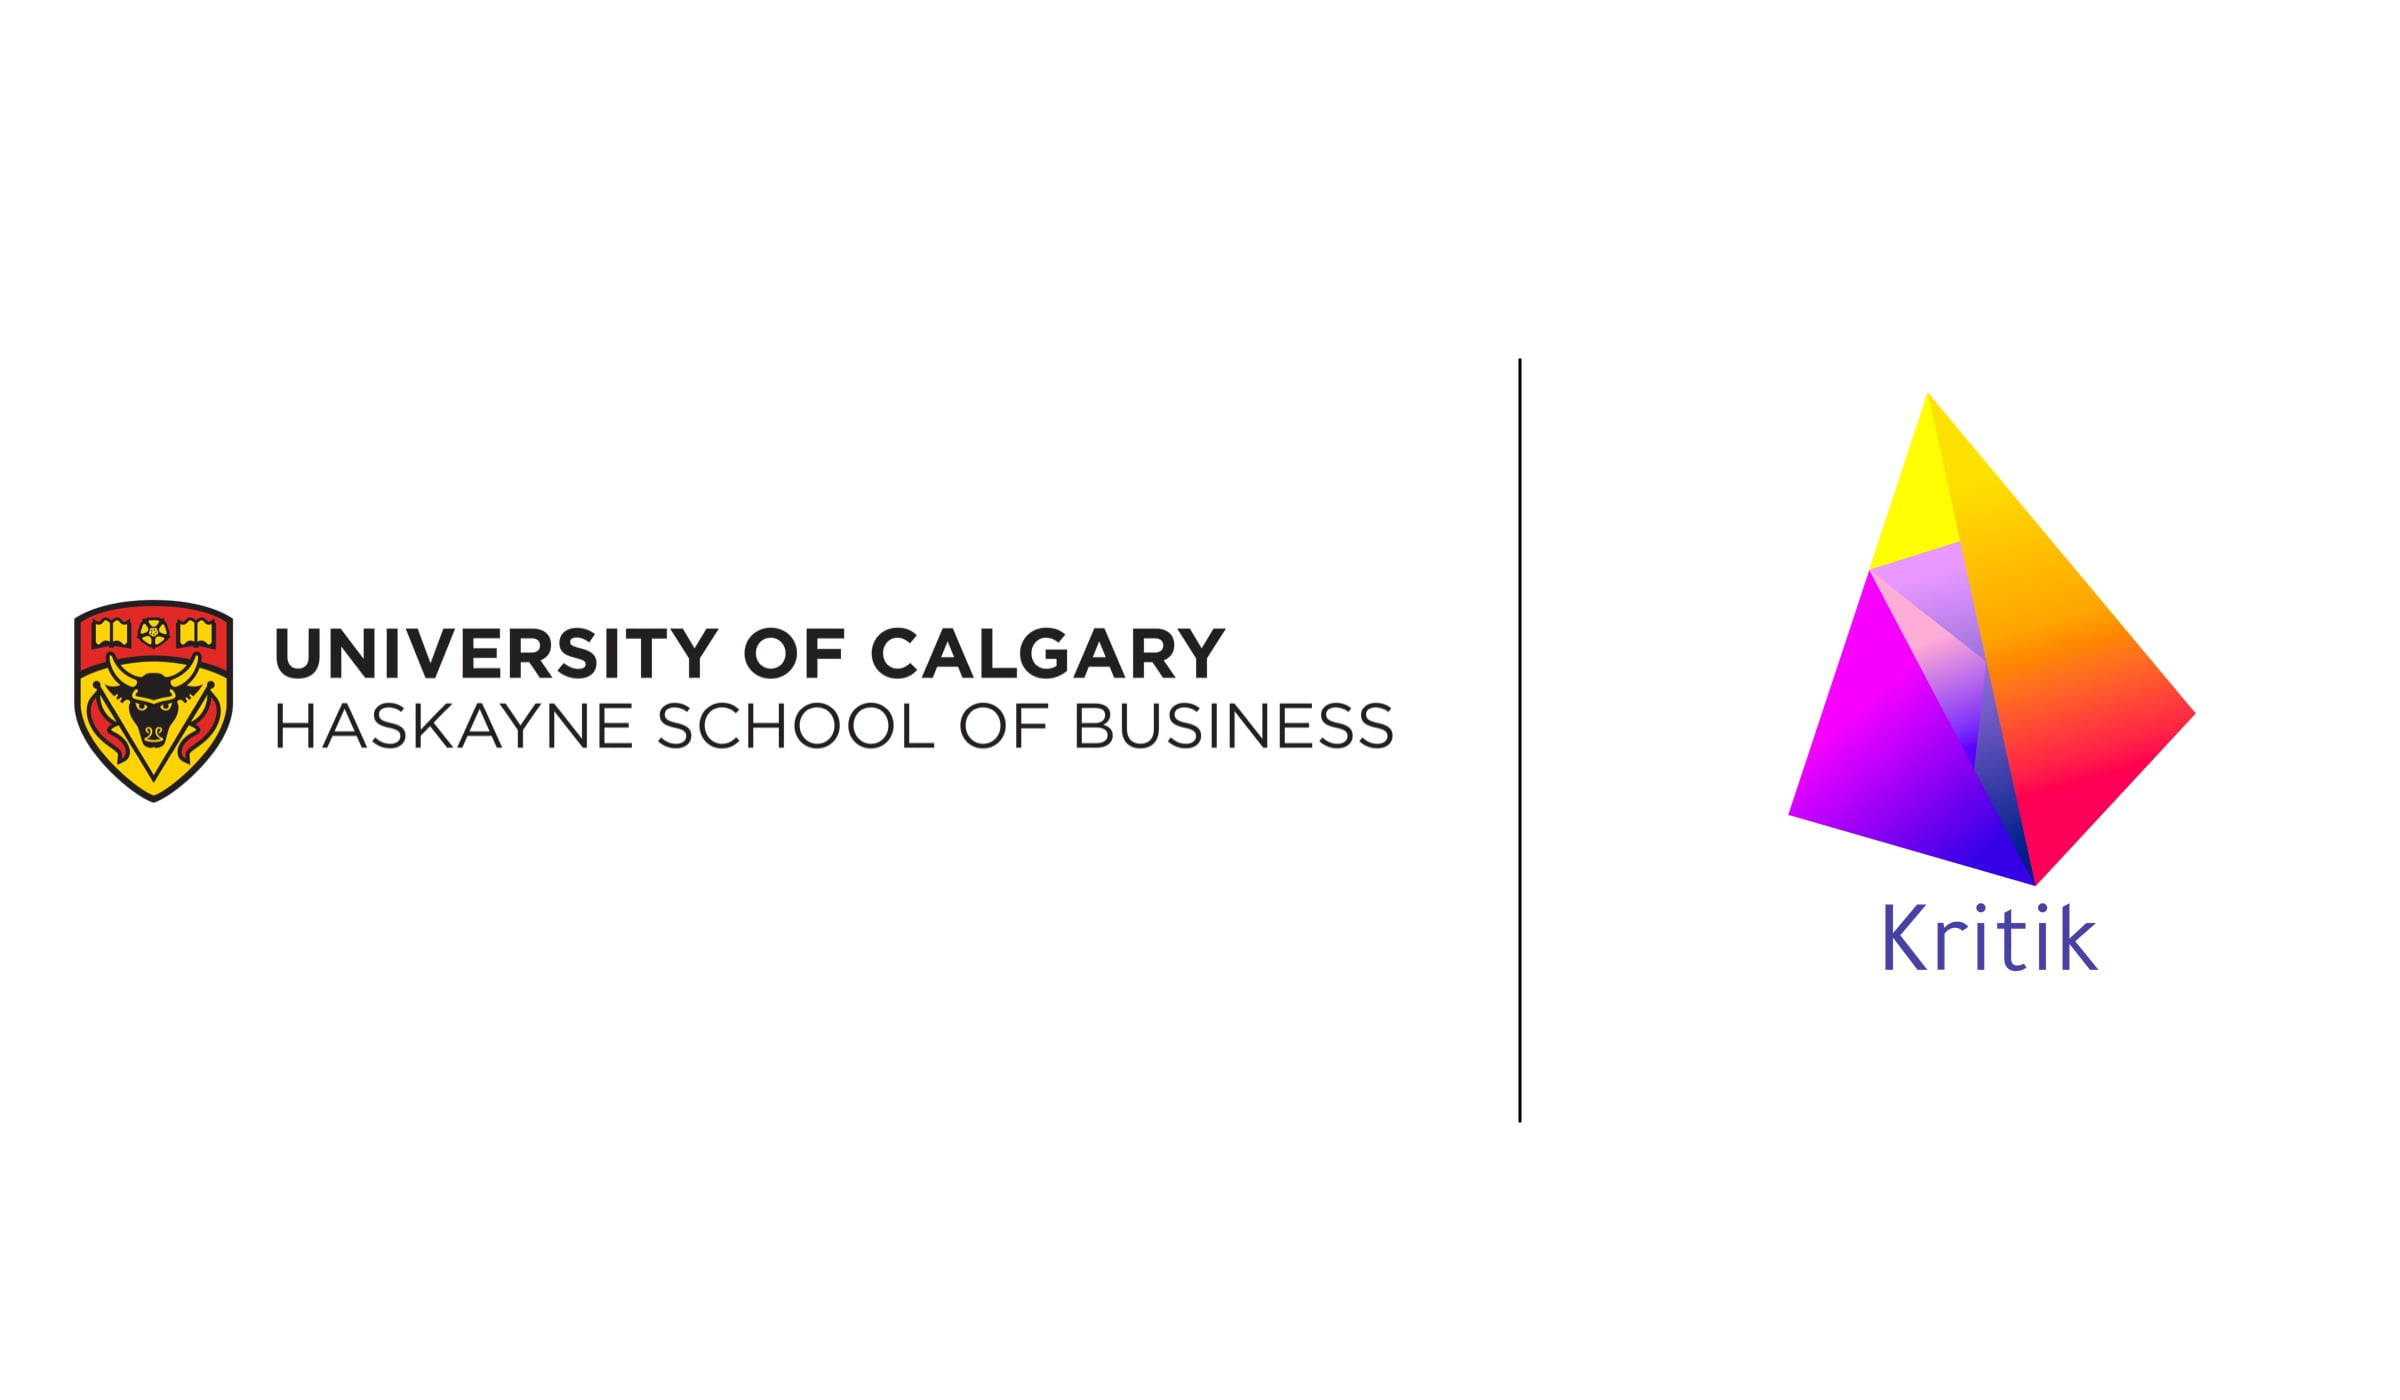 UCalgary's Haskayne School of Business Partners With Kritik to Enhance Student Learning Through Peer Assessment